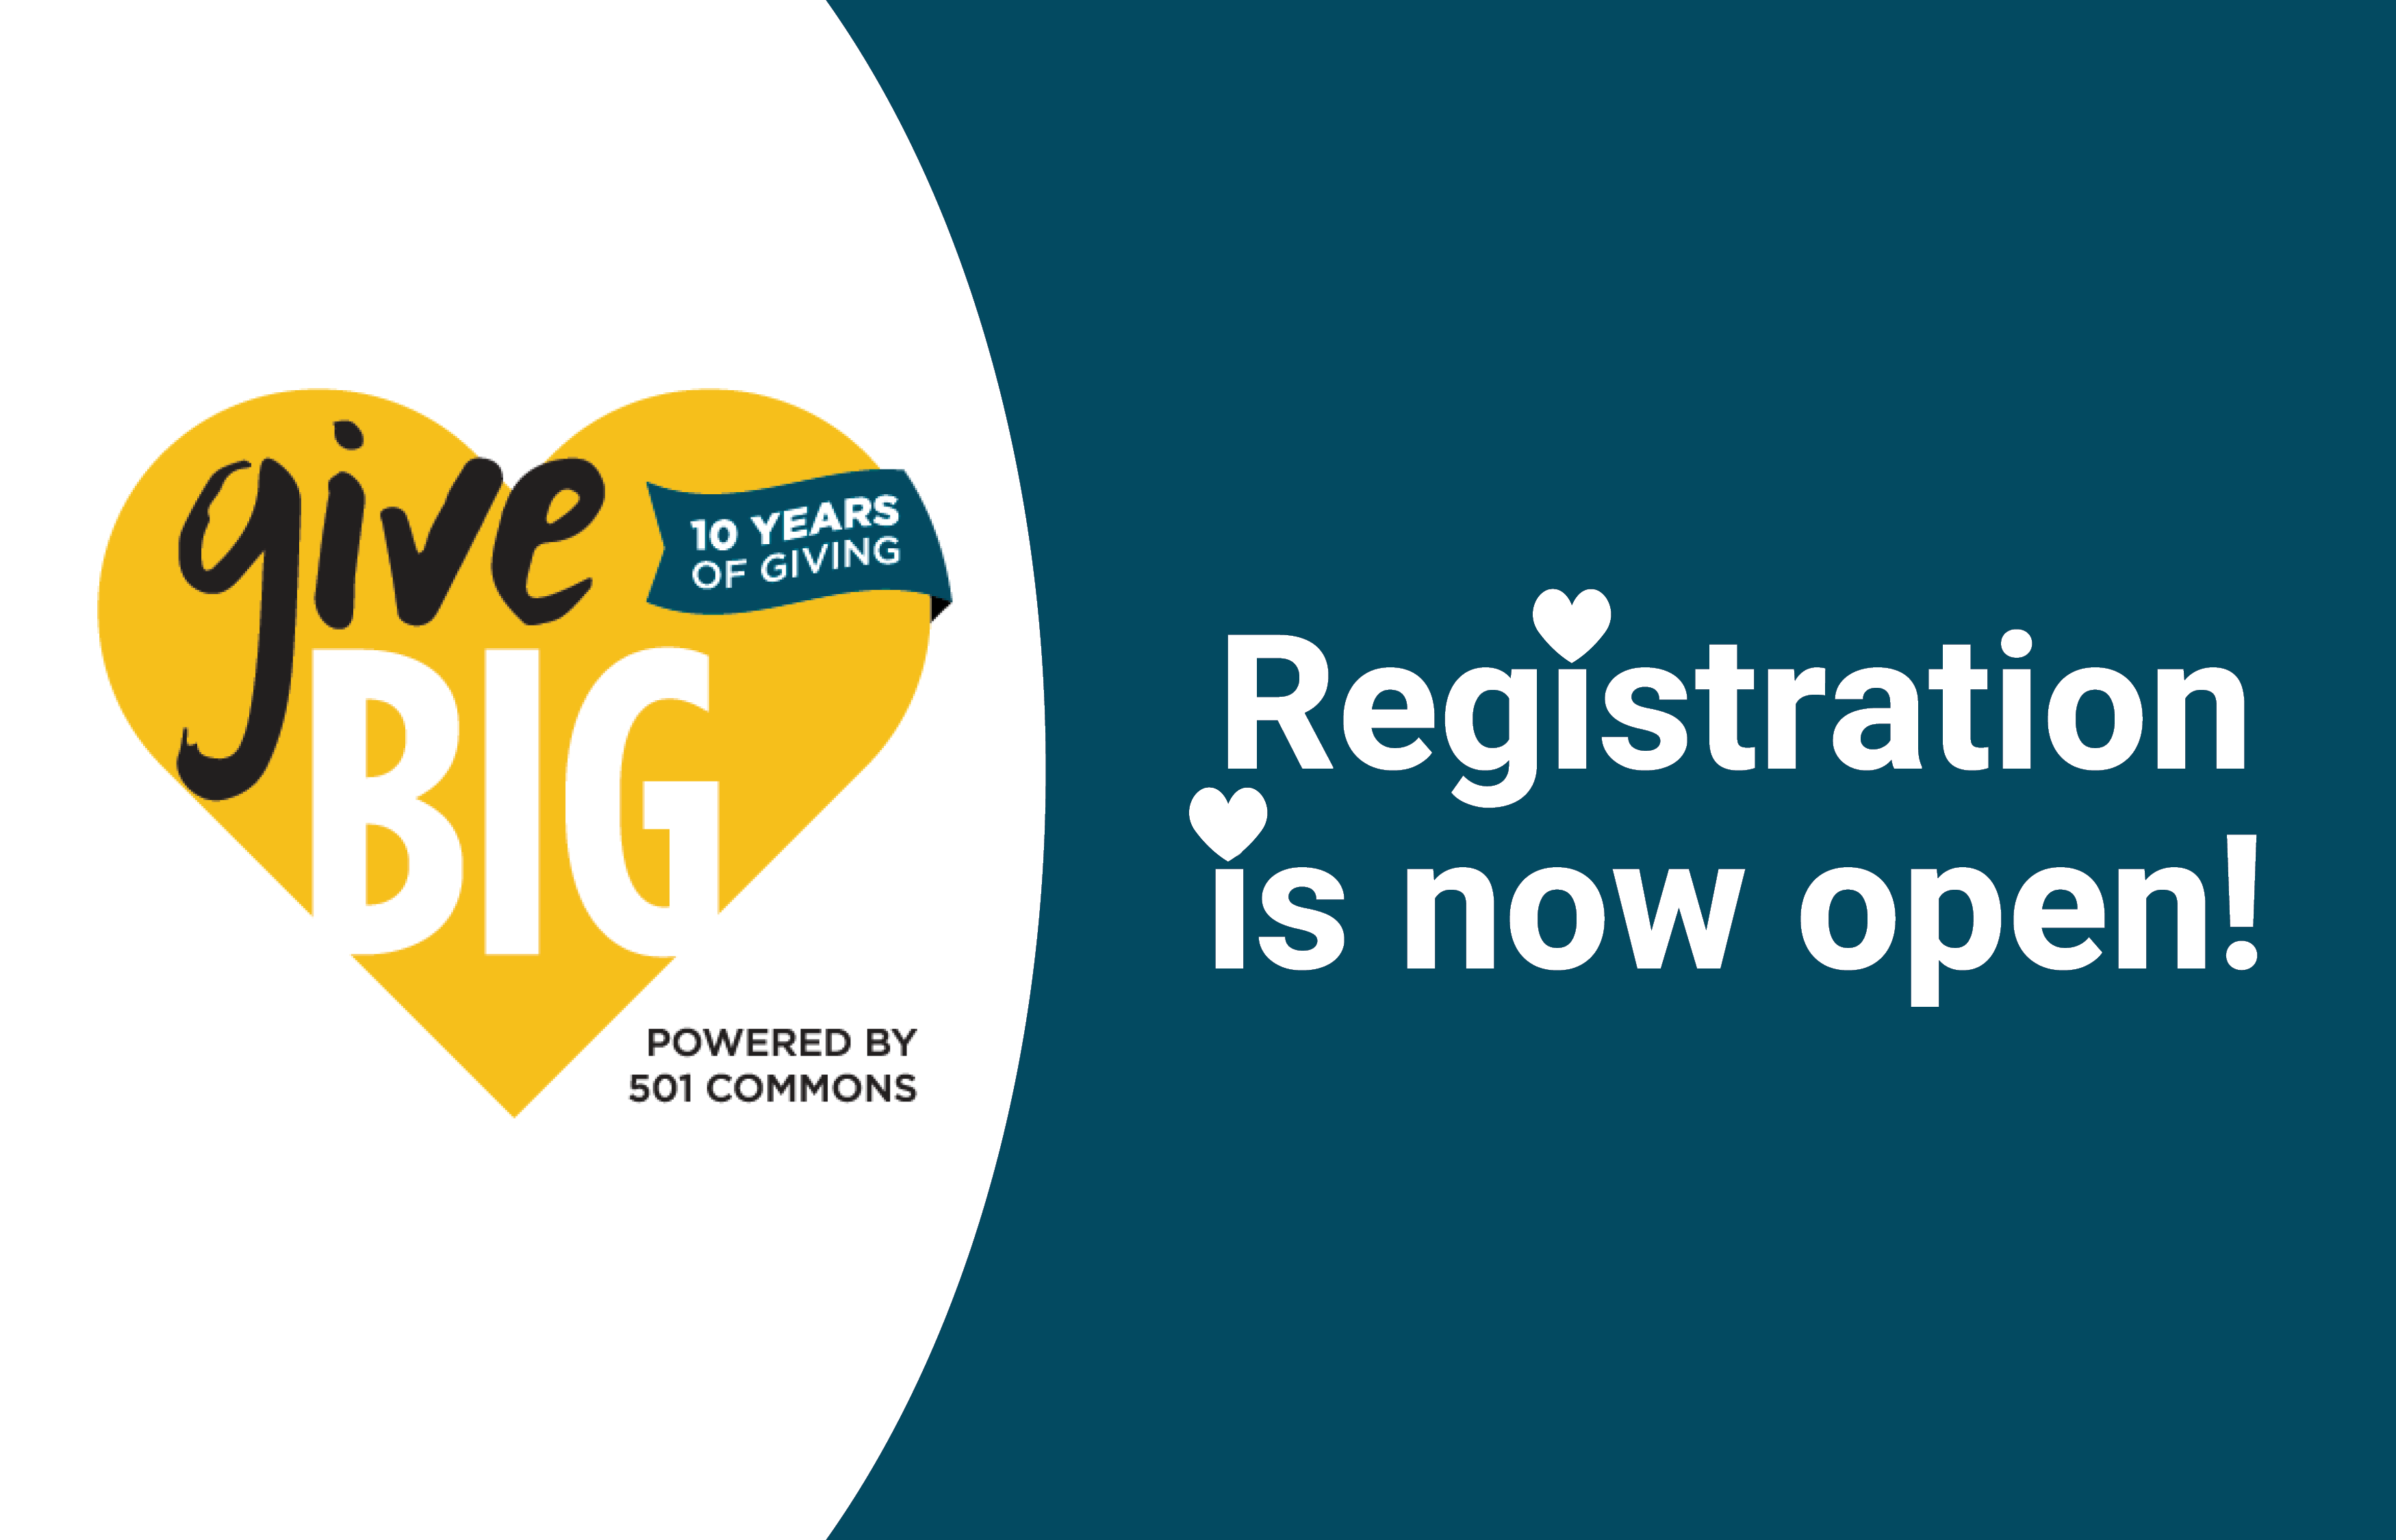 GiveBIG Washington Registration is Open! See What's New